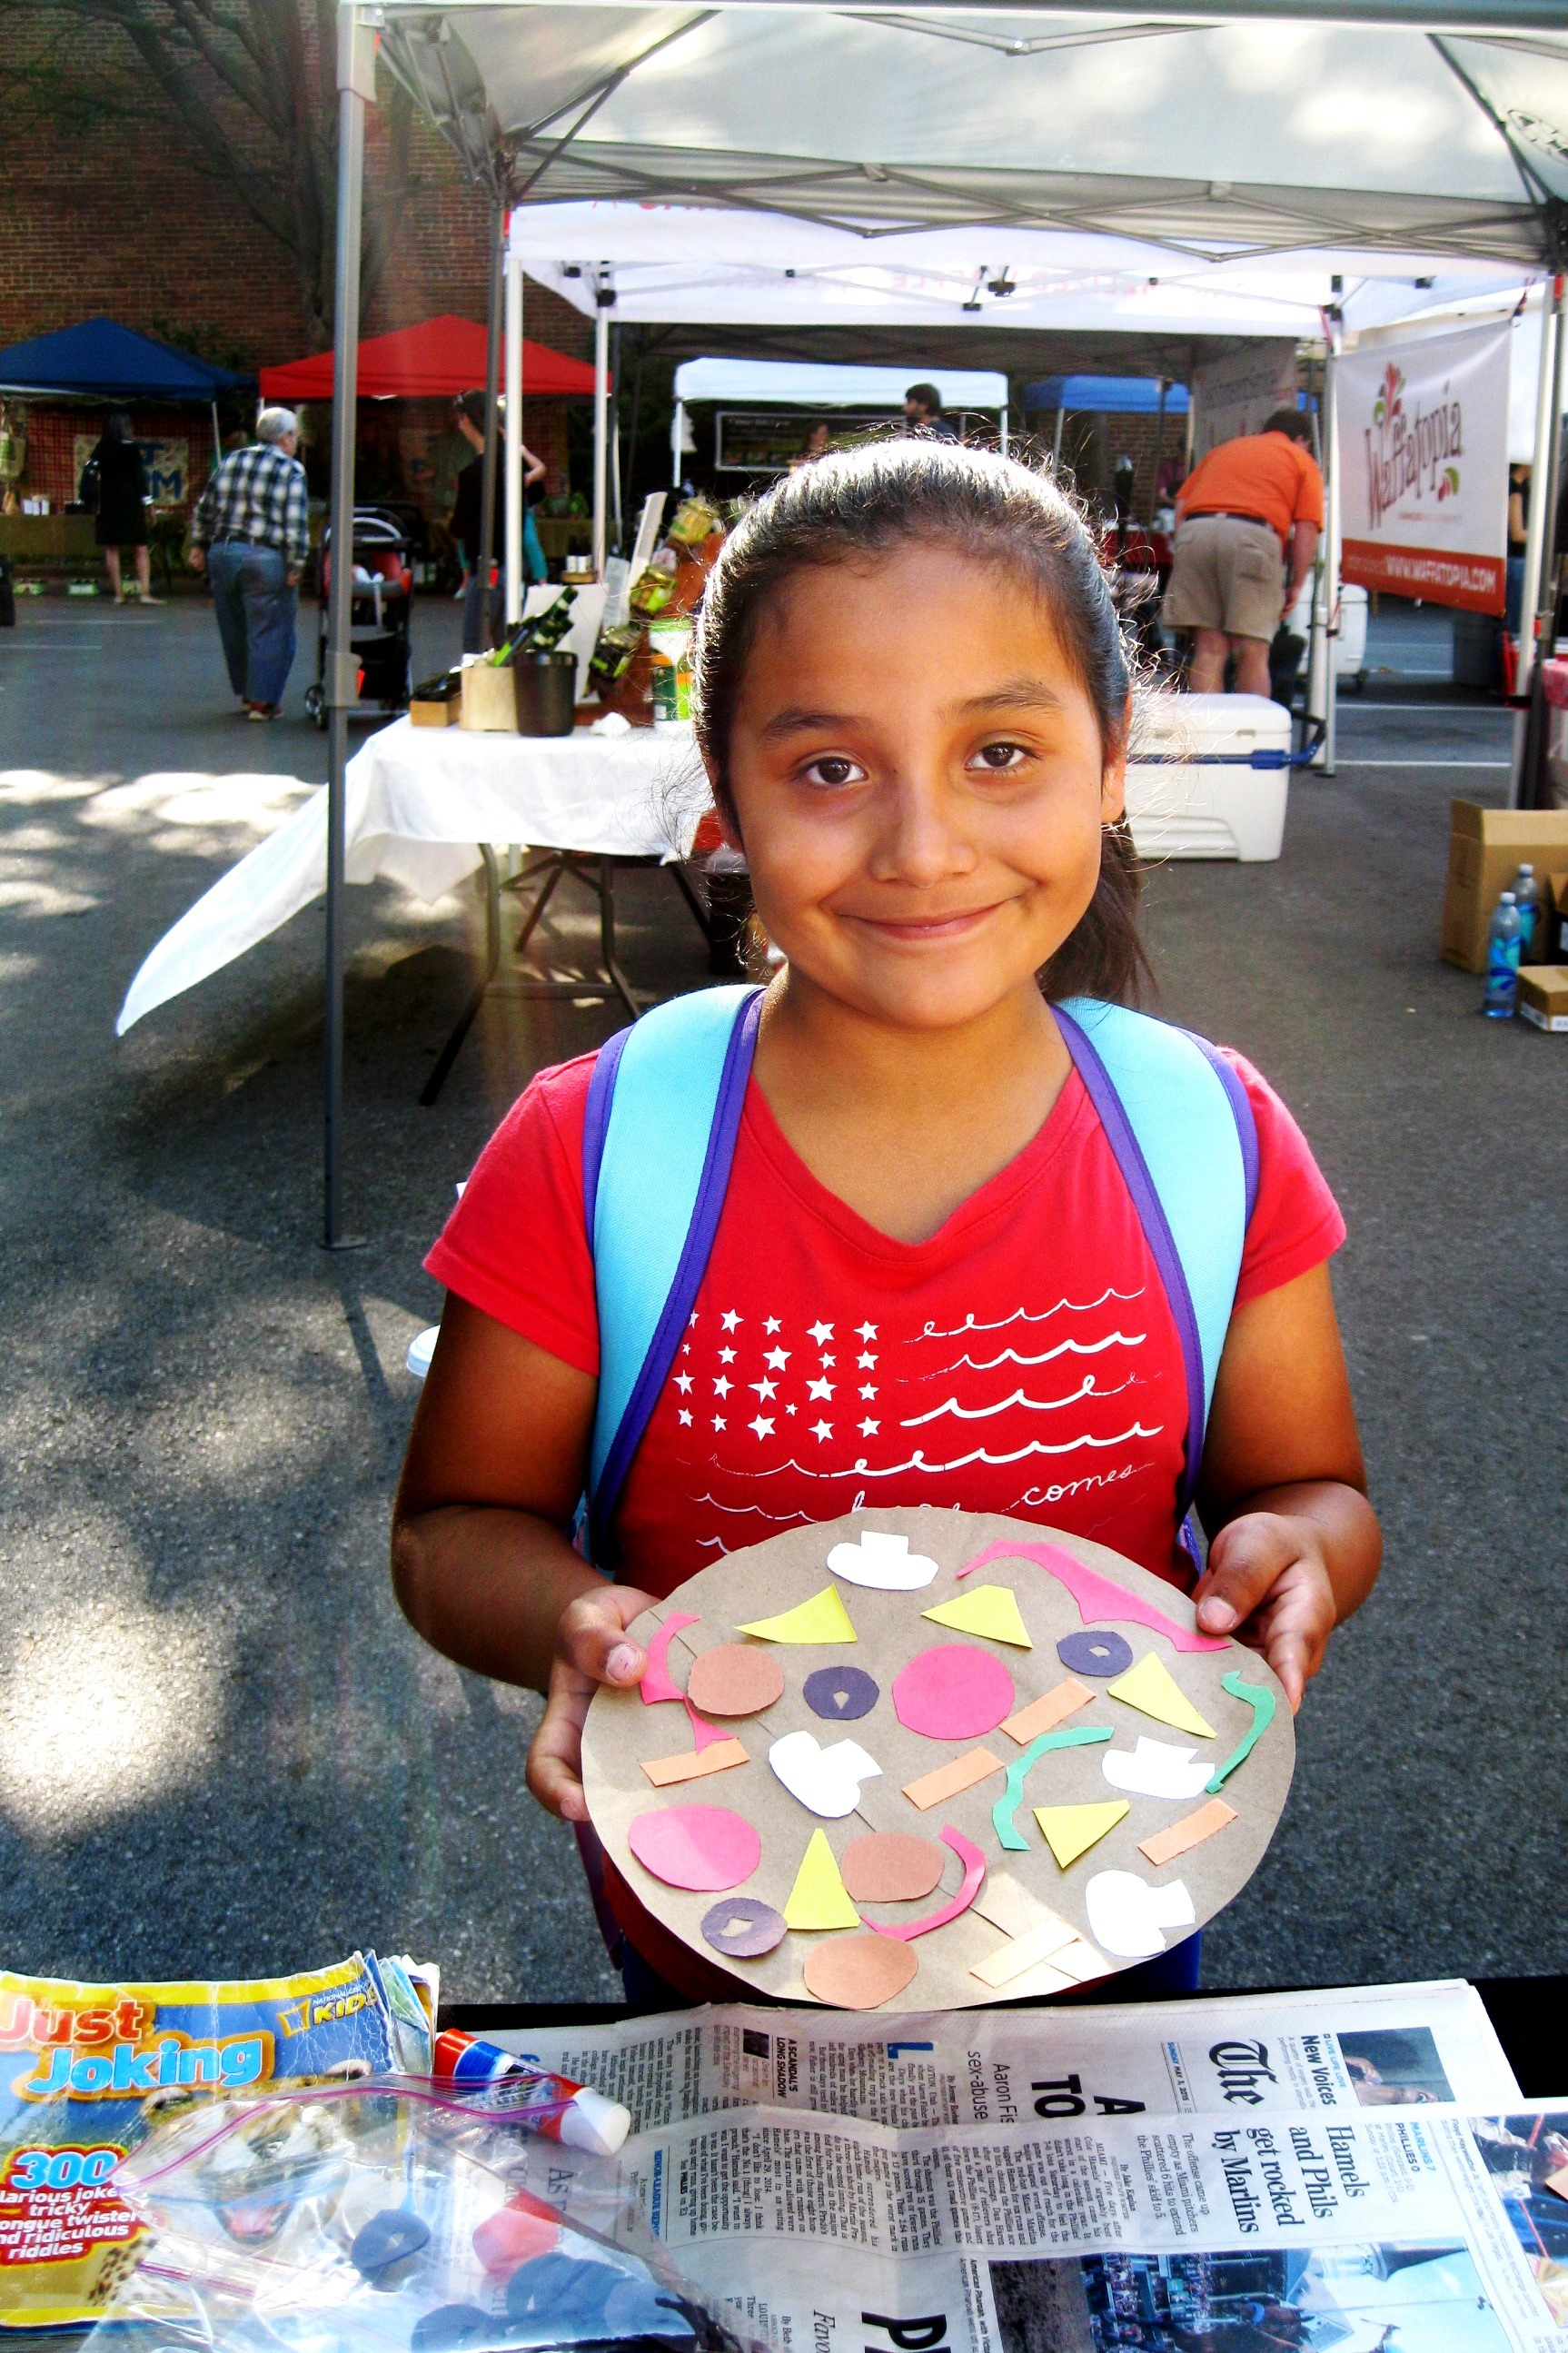 Healthy Pizza Project at Farmer's Market